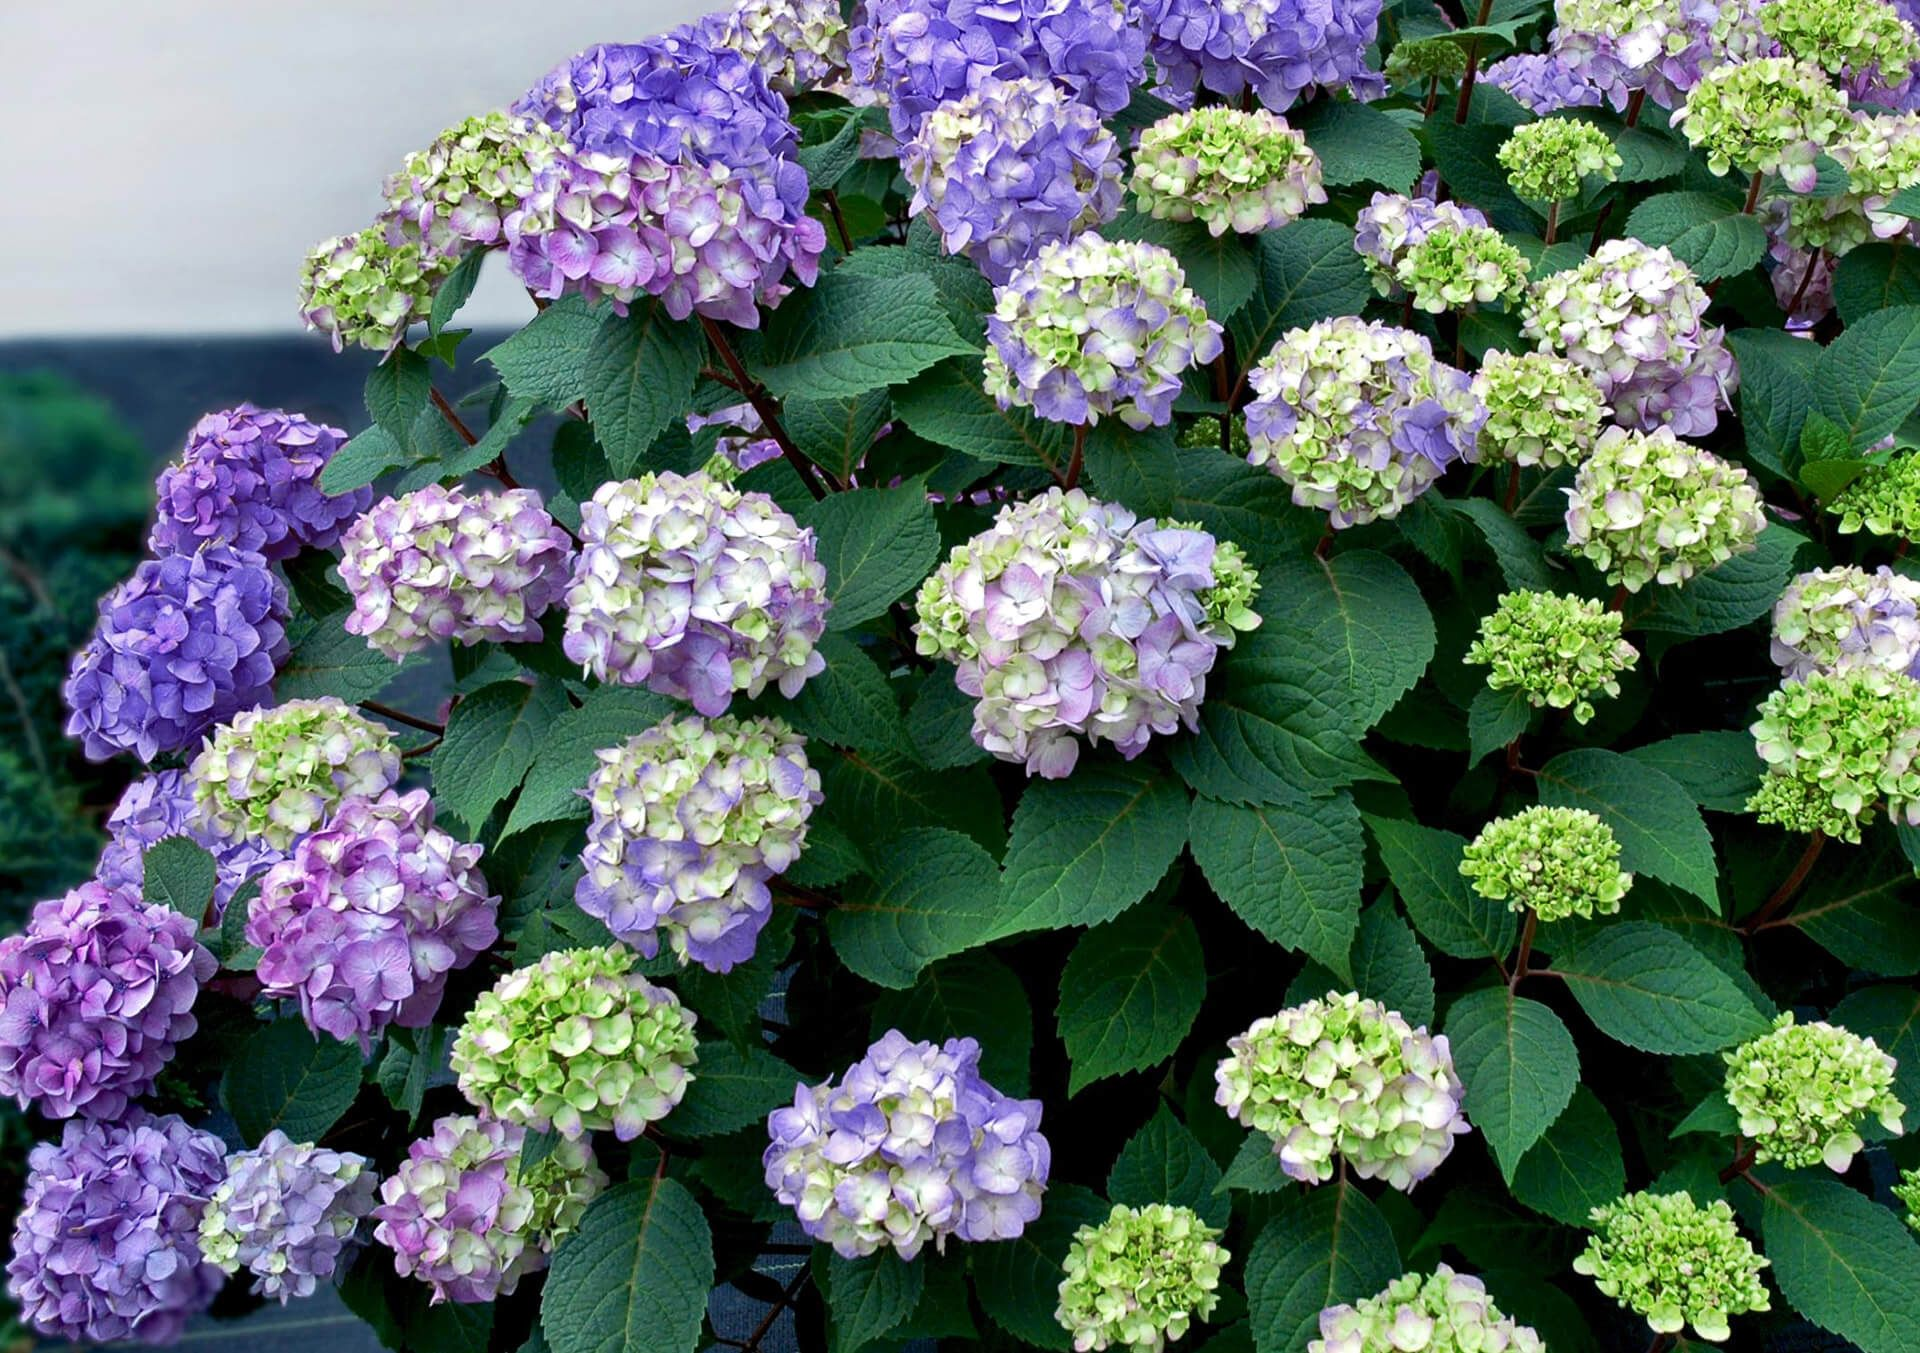 This Reblooming Hydrangea Flowers On Old And New Wood Intense Rose Pink Violet Or Blue Fl Bloomstruck Hydrangea Hydrangea Varieties Endless Summer Hydrangea